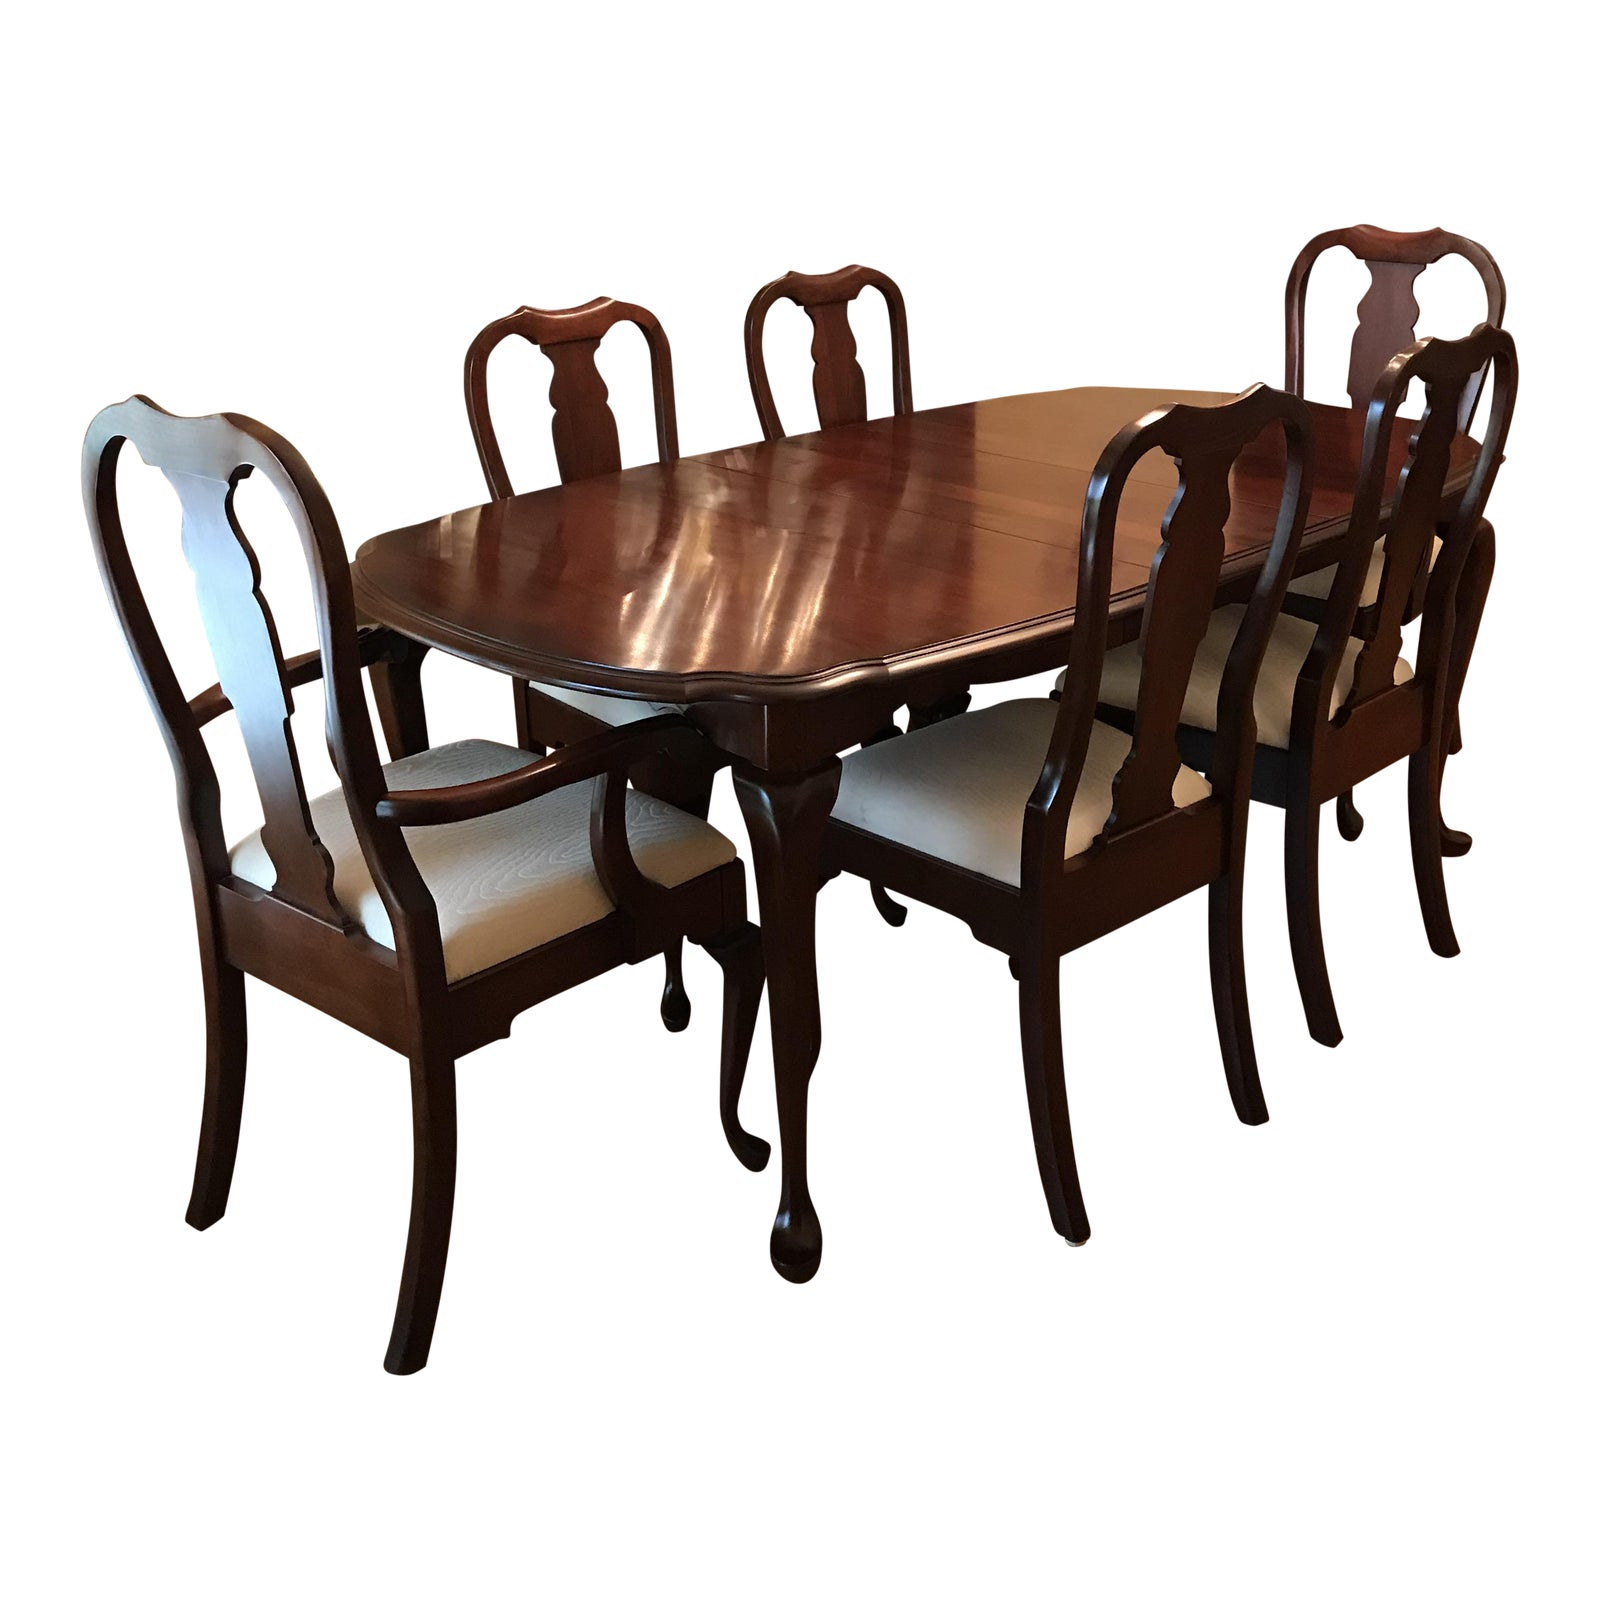 Pennsylvania House Solid Cherry Dining, Used Pennsylvania House Dining Room Furniture